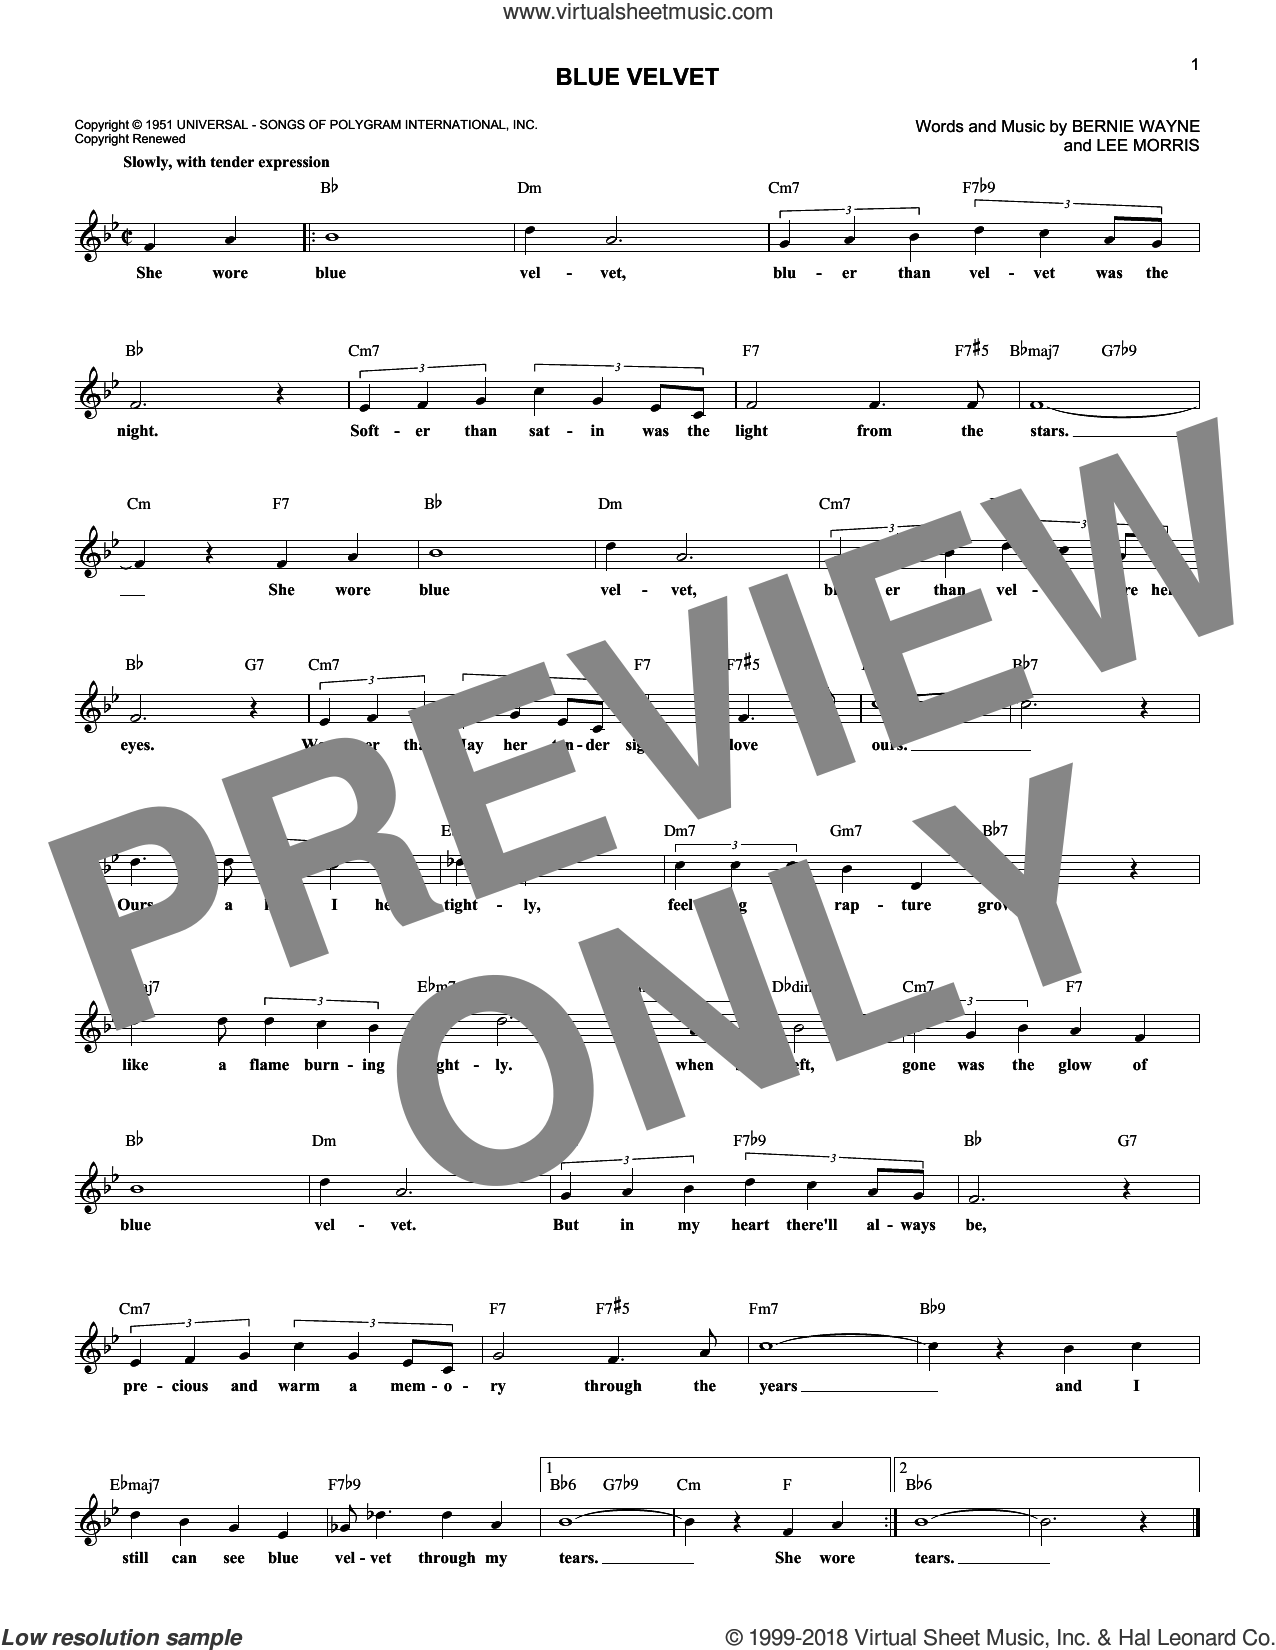 Blue Velvet sheet music for voice and other instruments (fake book) by Bobby Vinton, Statues, Bernie Wayne and Lee Morris, intermediate skill level